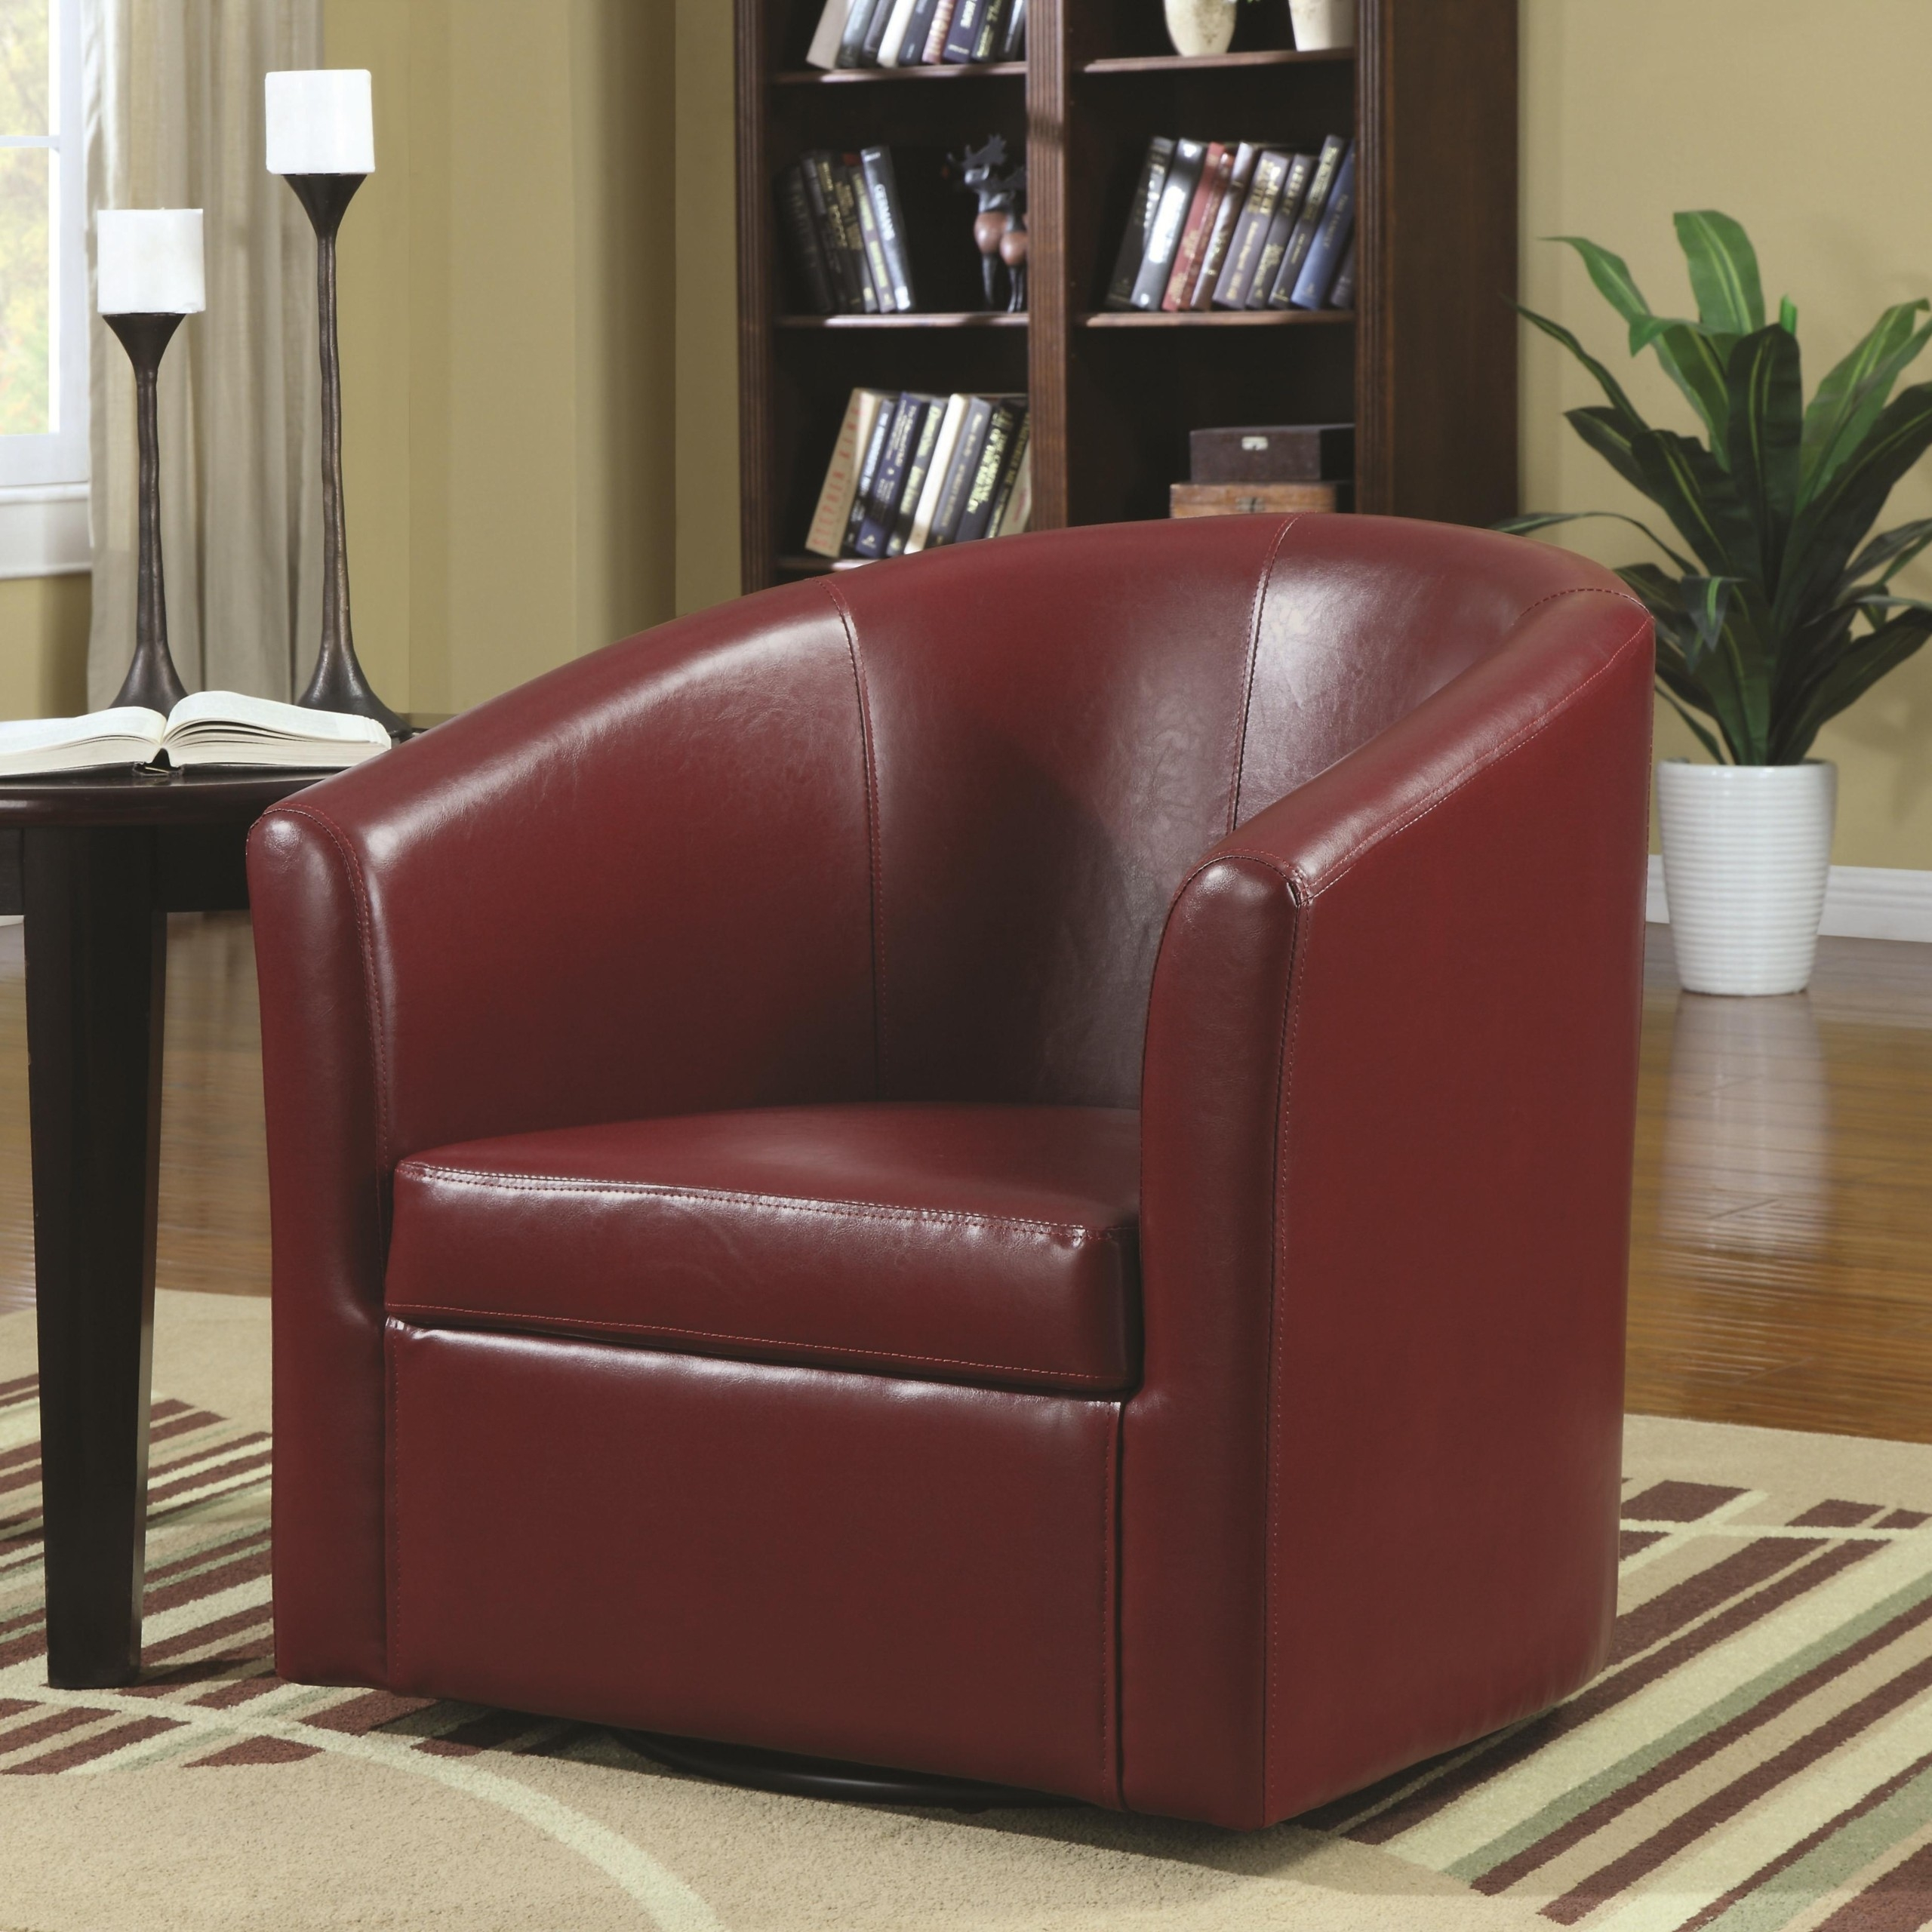 Picture of: Barrel Chairs Swivel Ideas On Foter